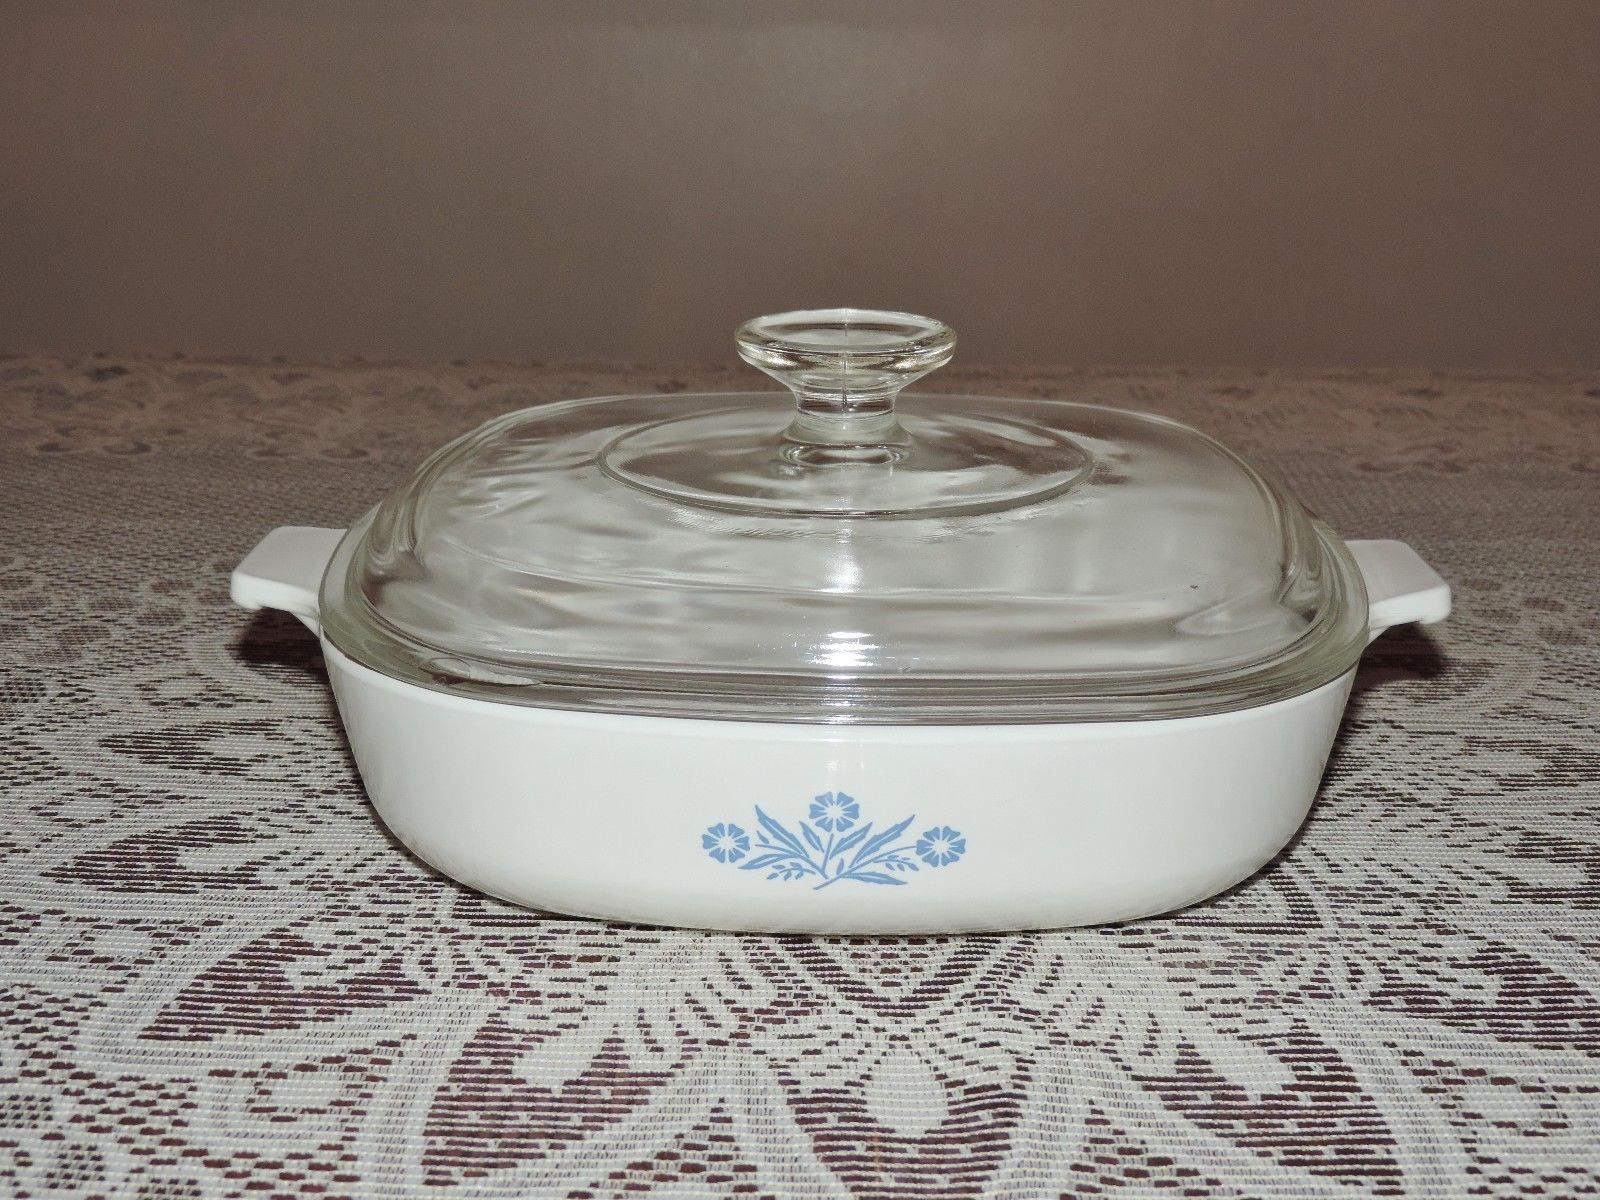 Corning Ware Cornflower Blue 9